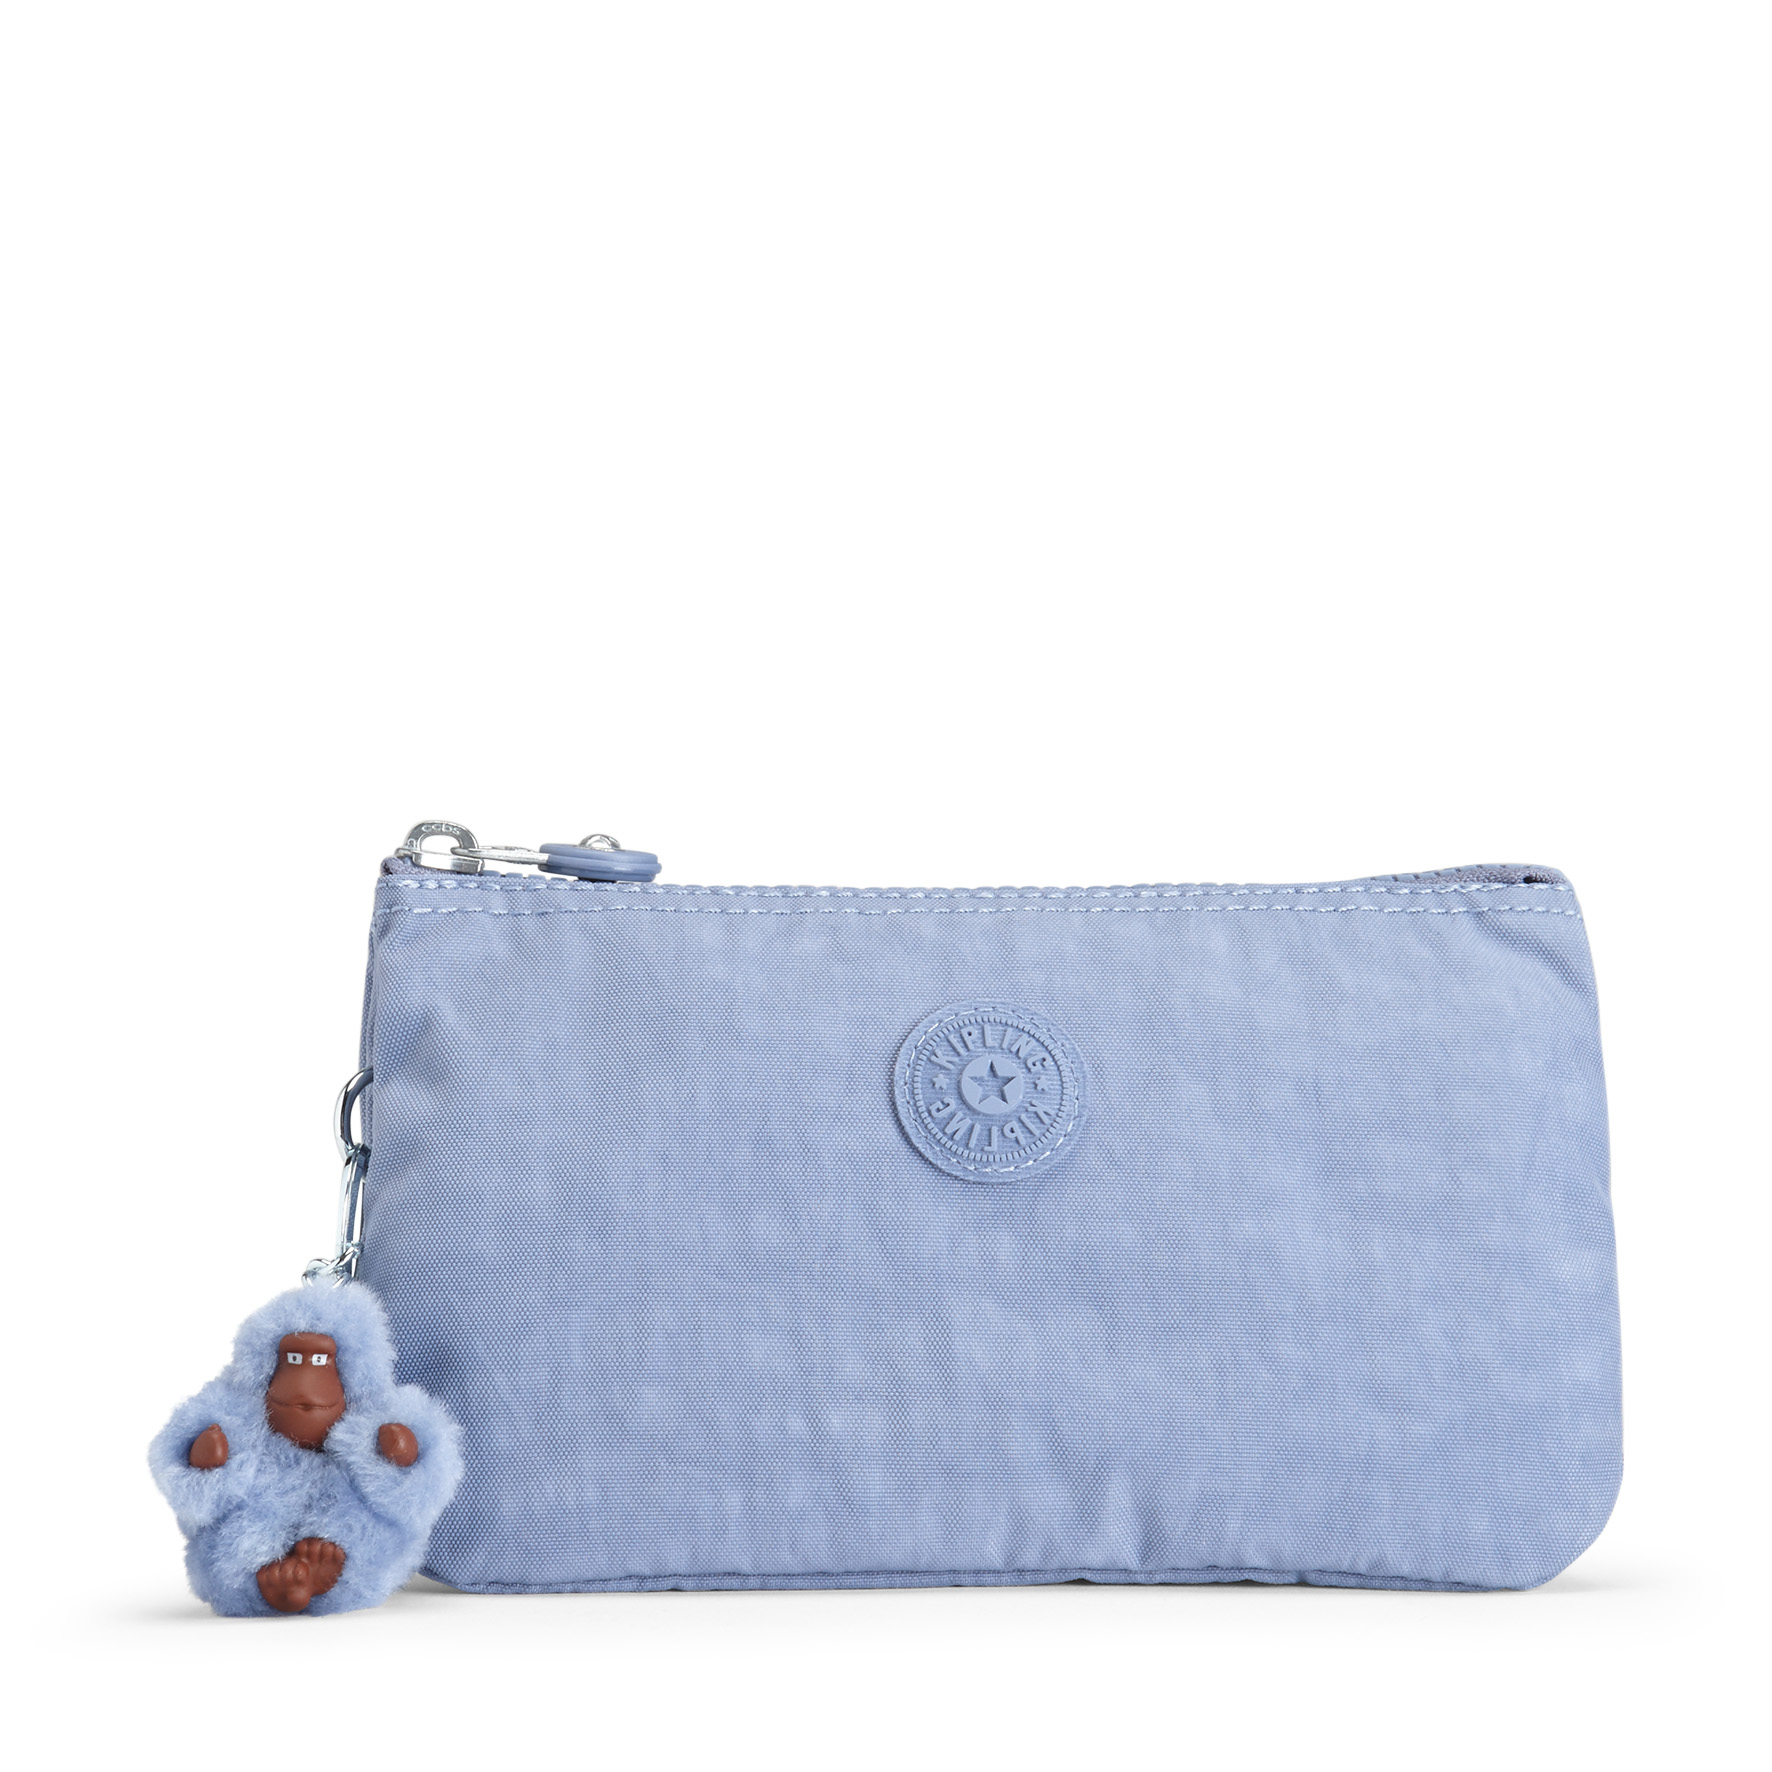 907b2dd644 CREATIVITY L-TIMID BLUE C – Kipling Thailand Official